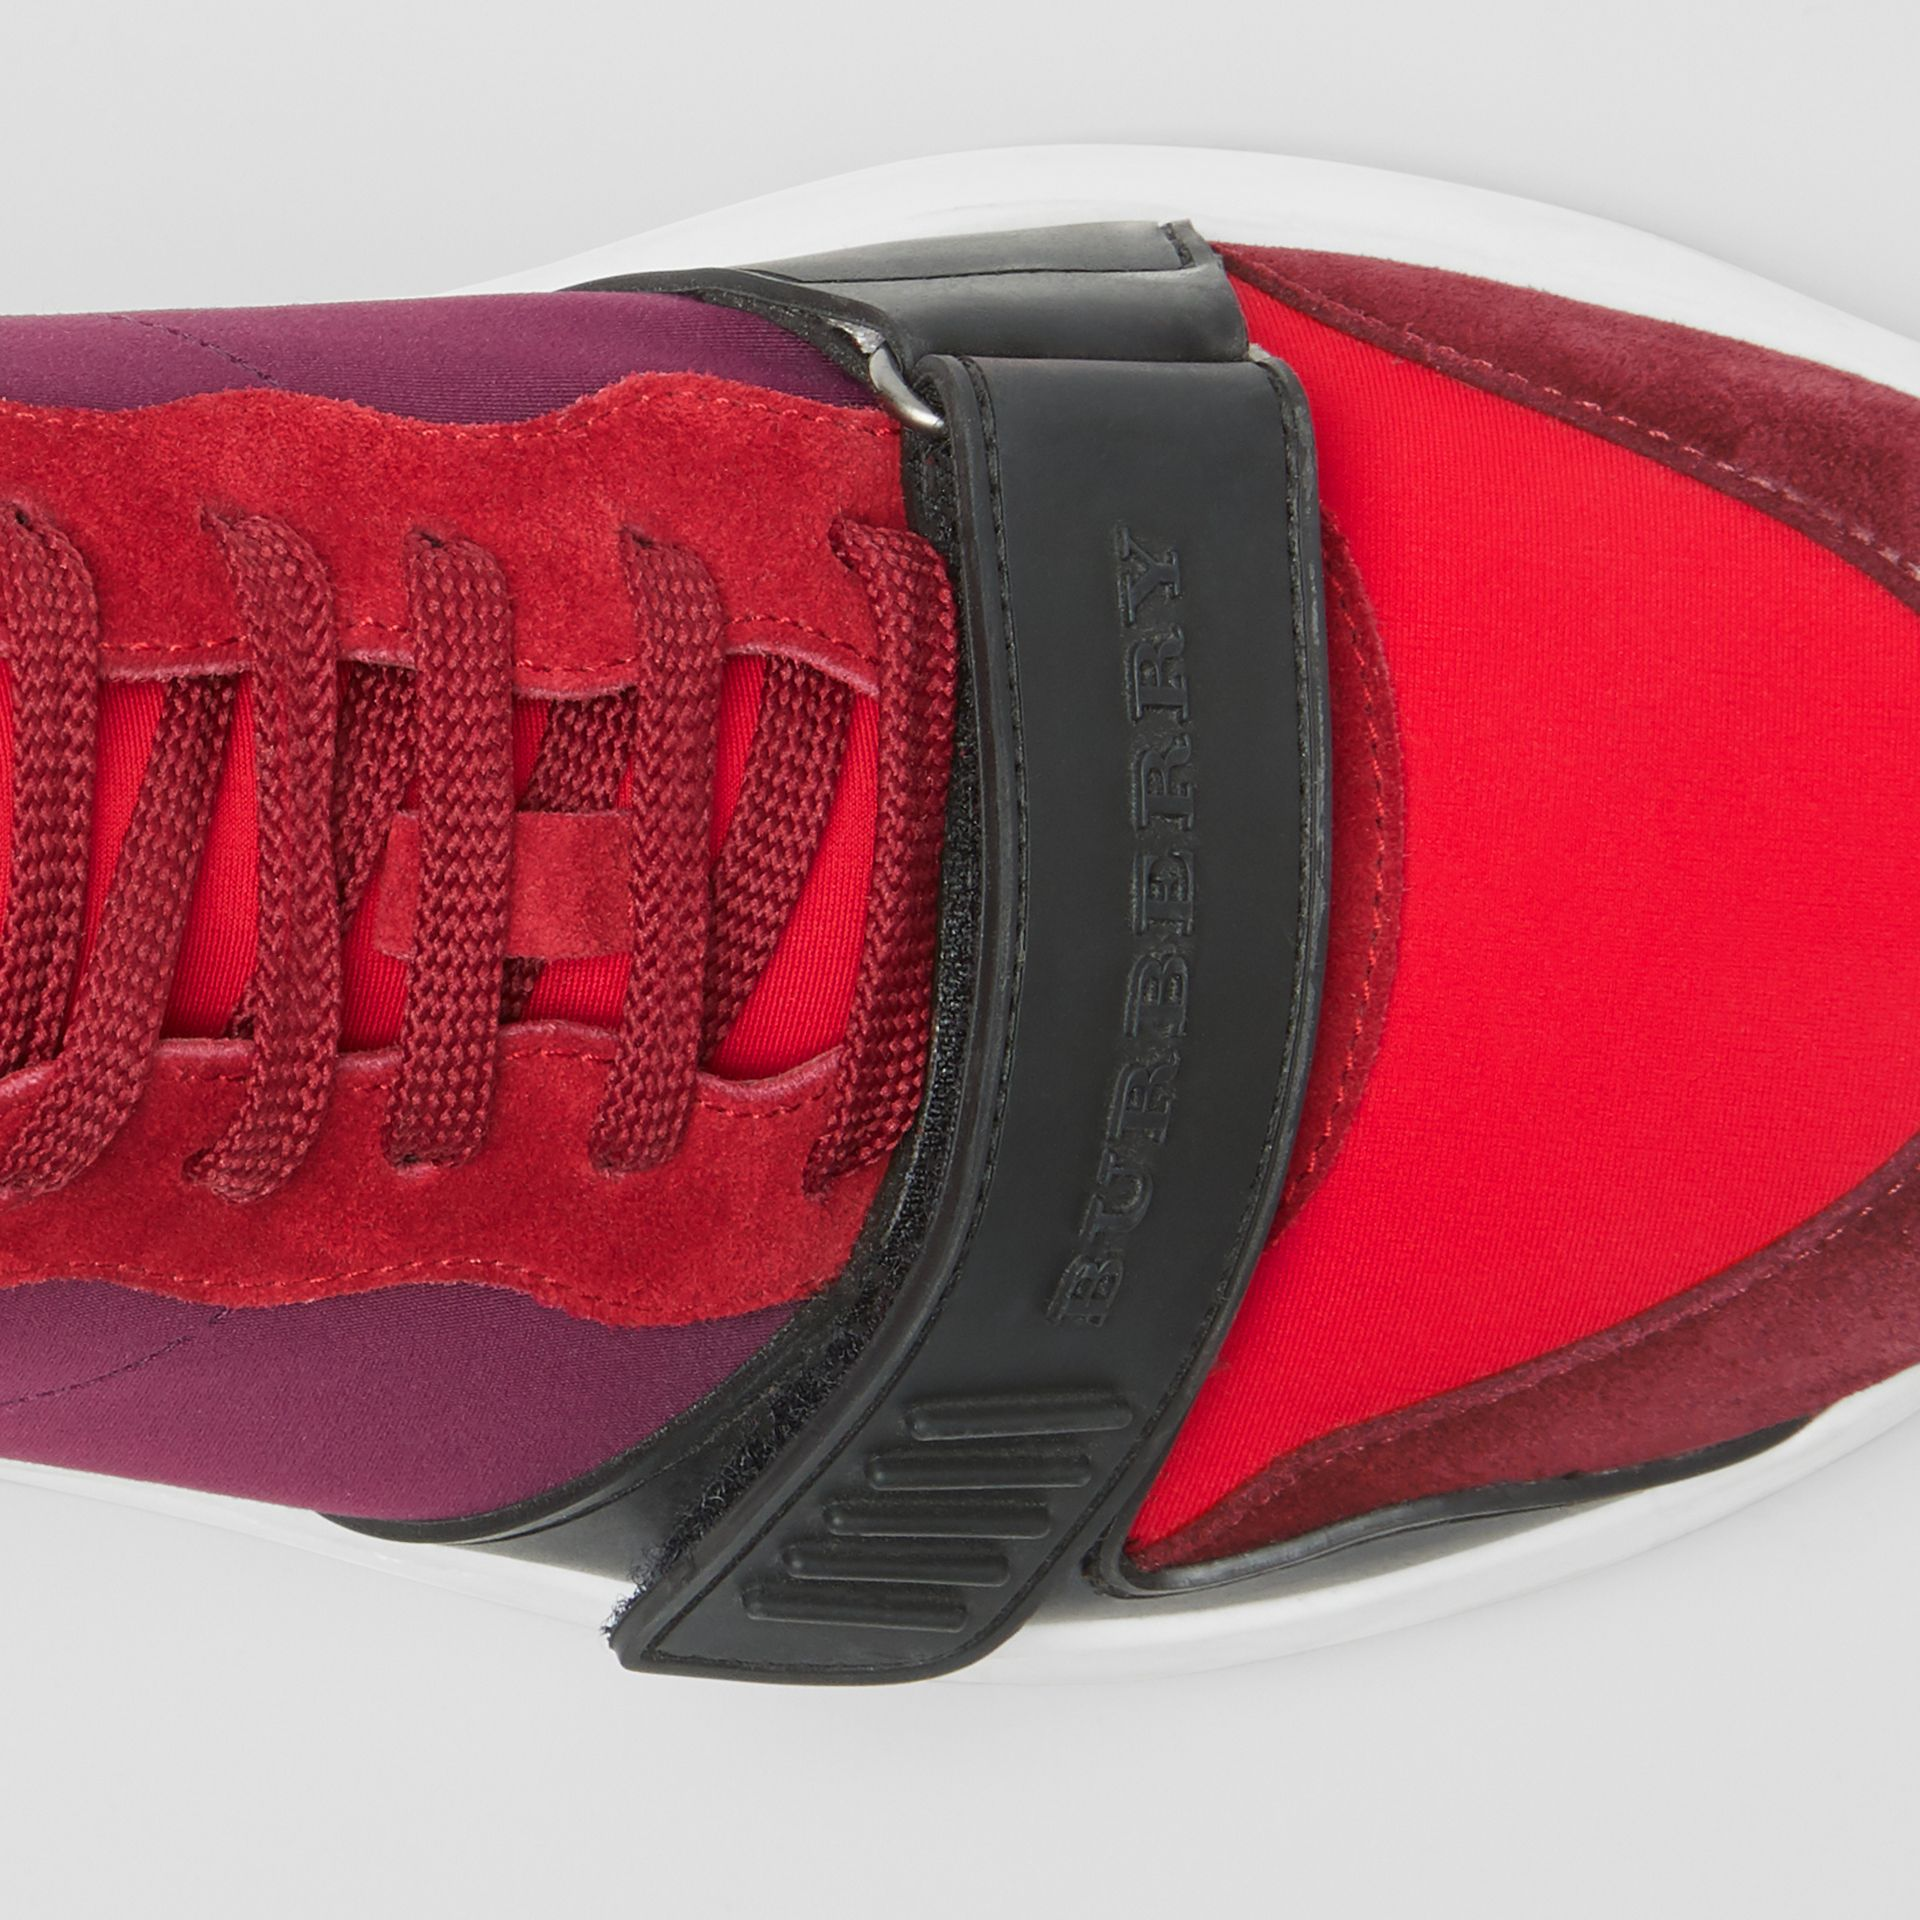 Suede, Neoprene and Leather Sneakers in Bordeaux - Men | Burberry - gallery image 1